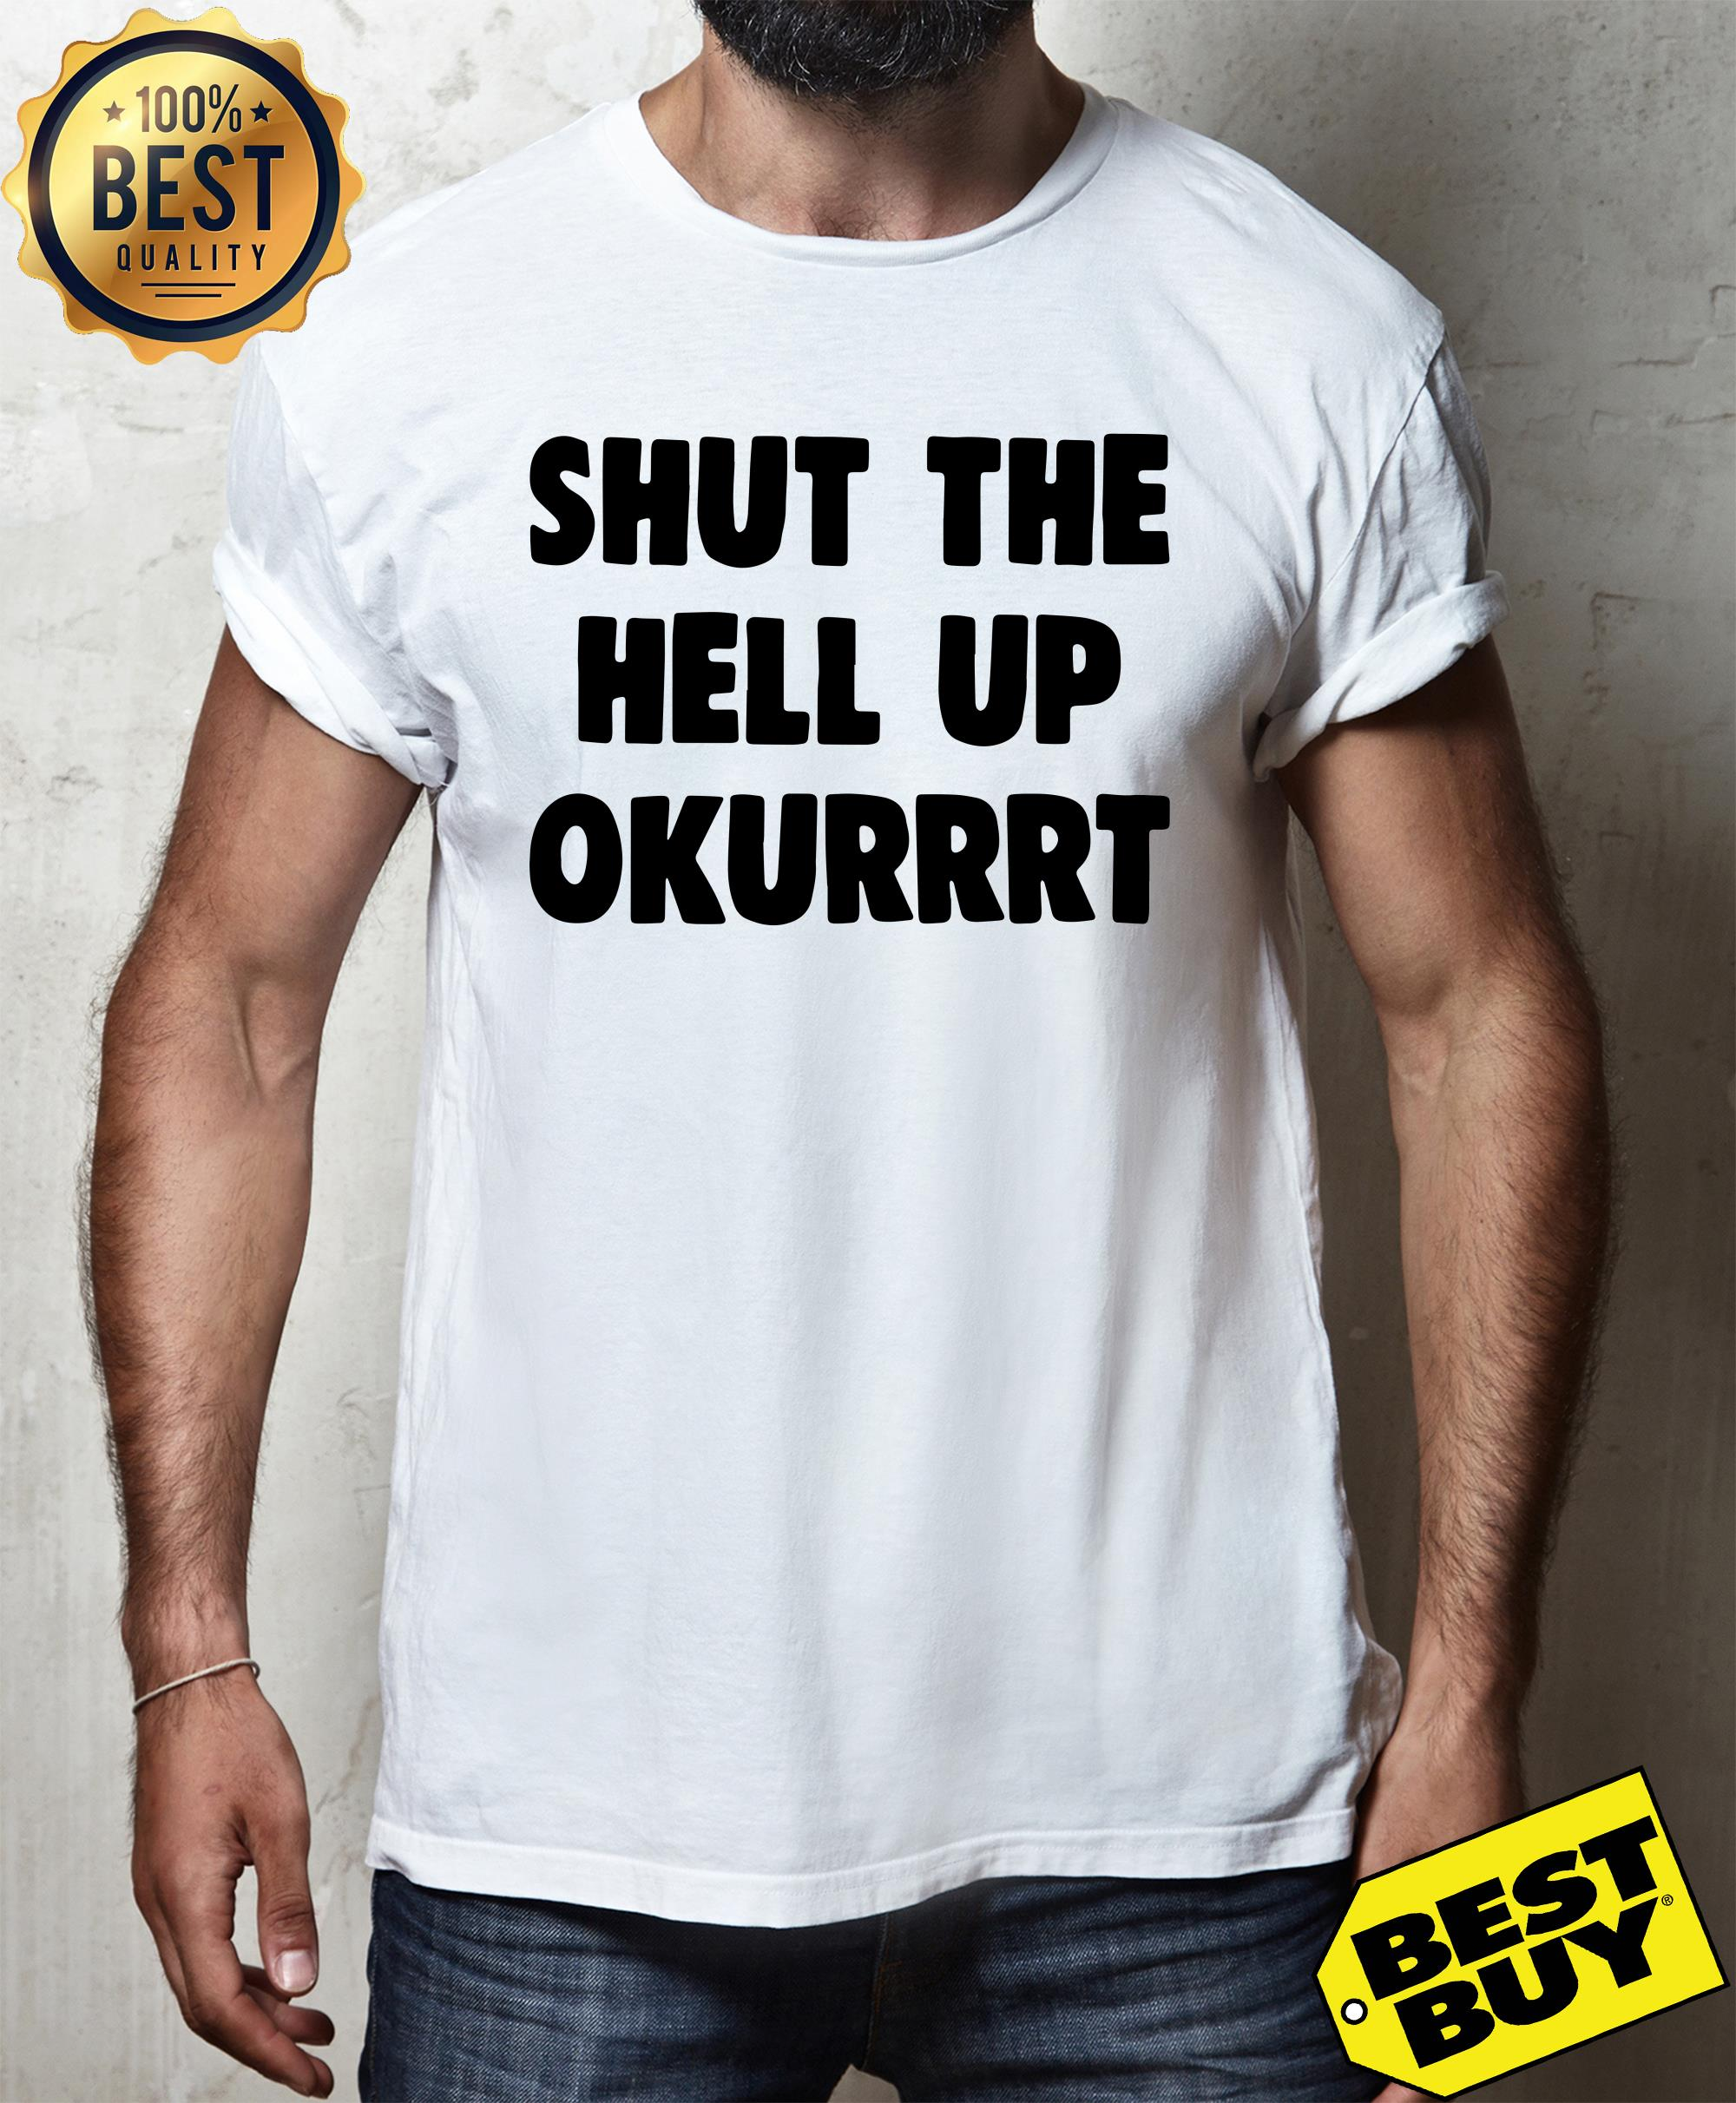 Shut the hell up okurrrt shirt